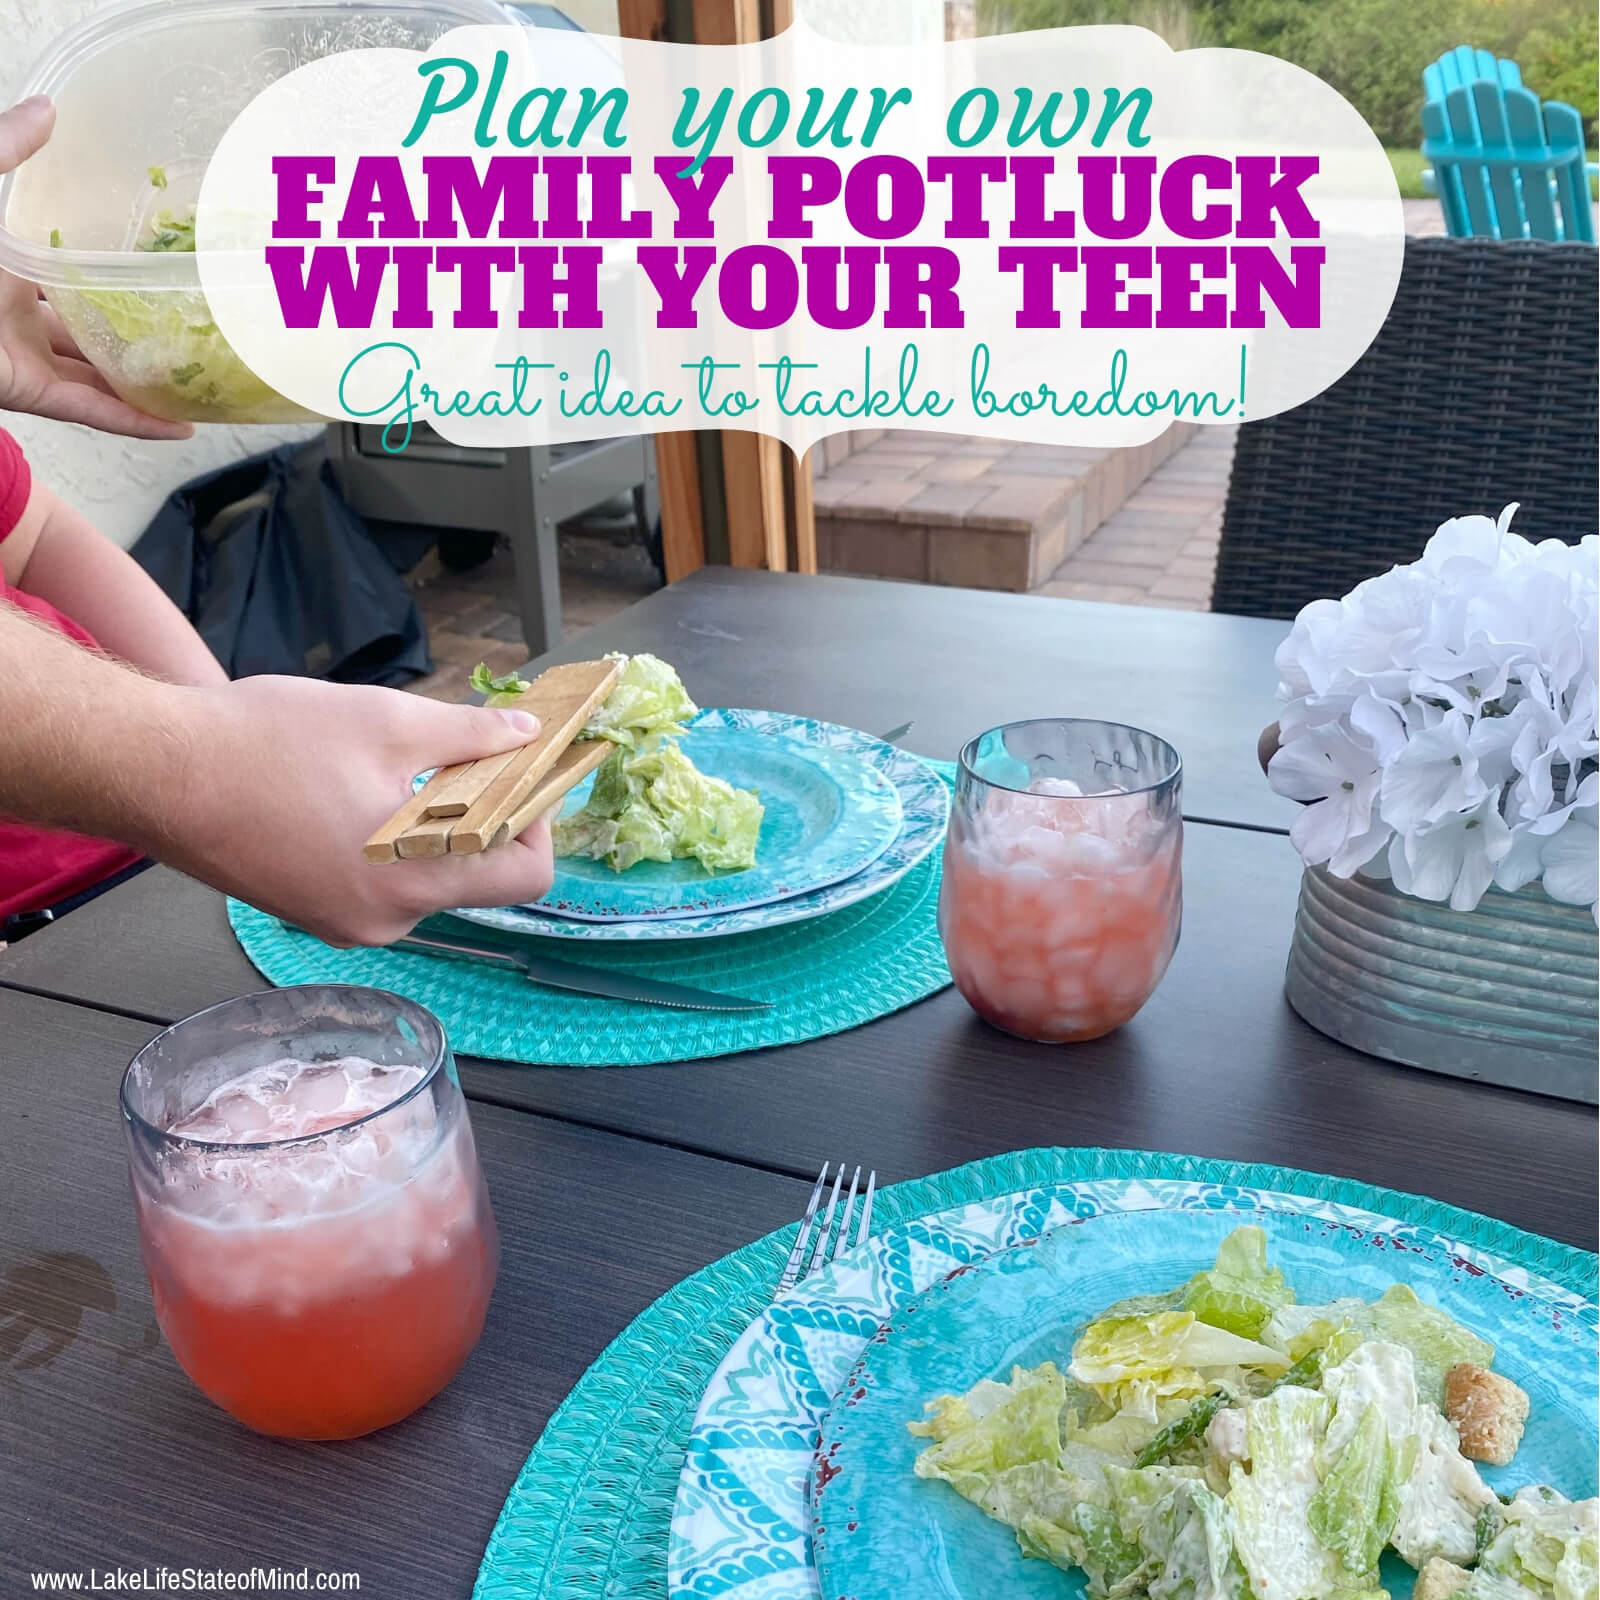 Fun Family Potluck Dinner Idea for Teens